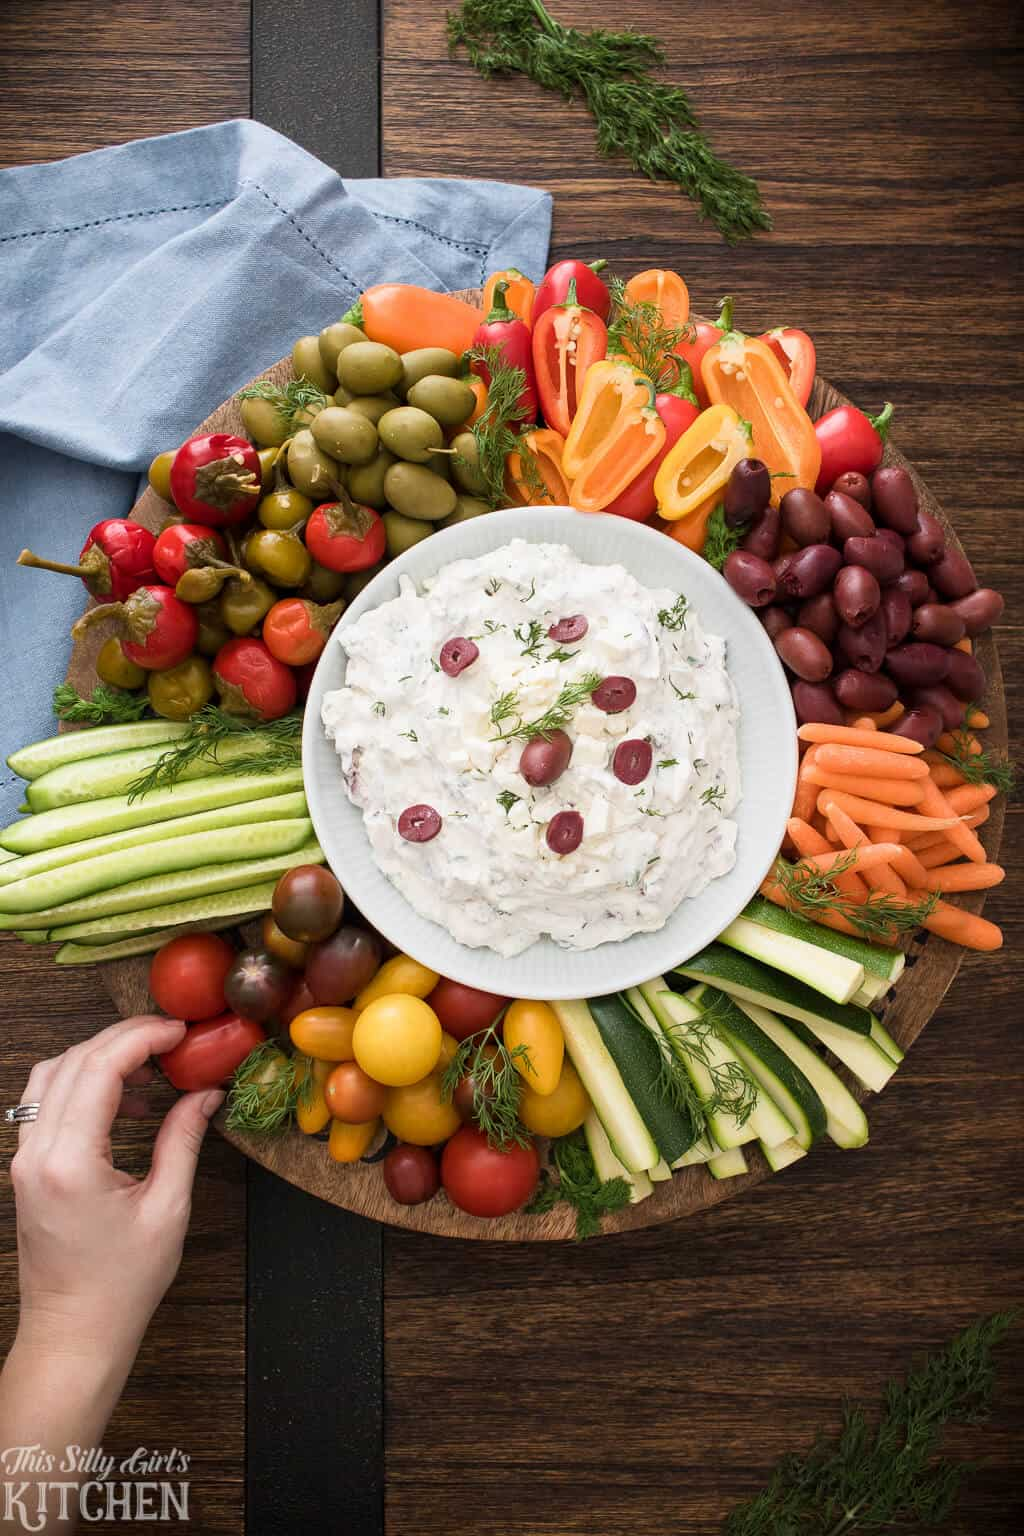 Hand placing vegetables on tray with Greek Yogurt Dip in center overhead photo